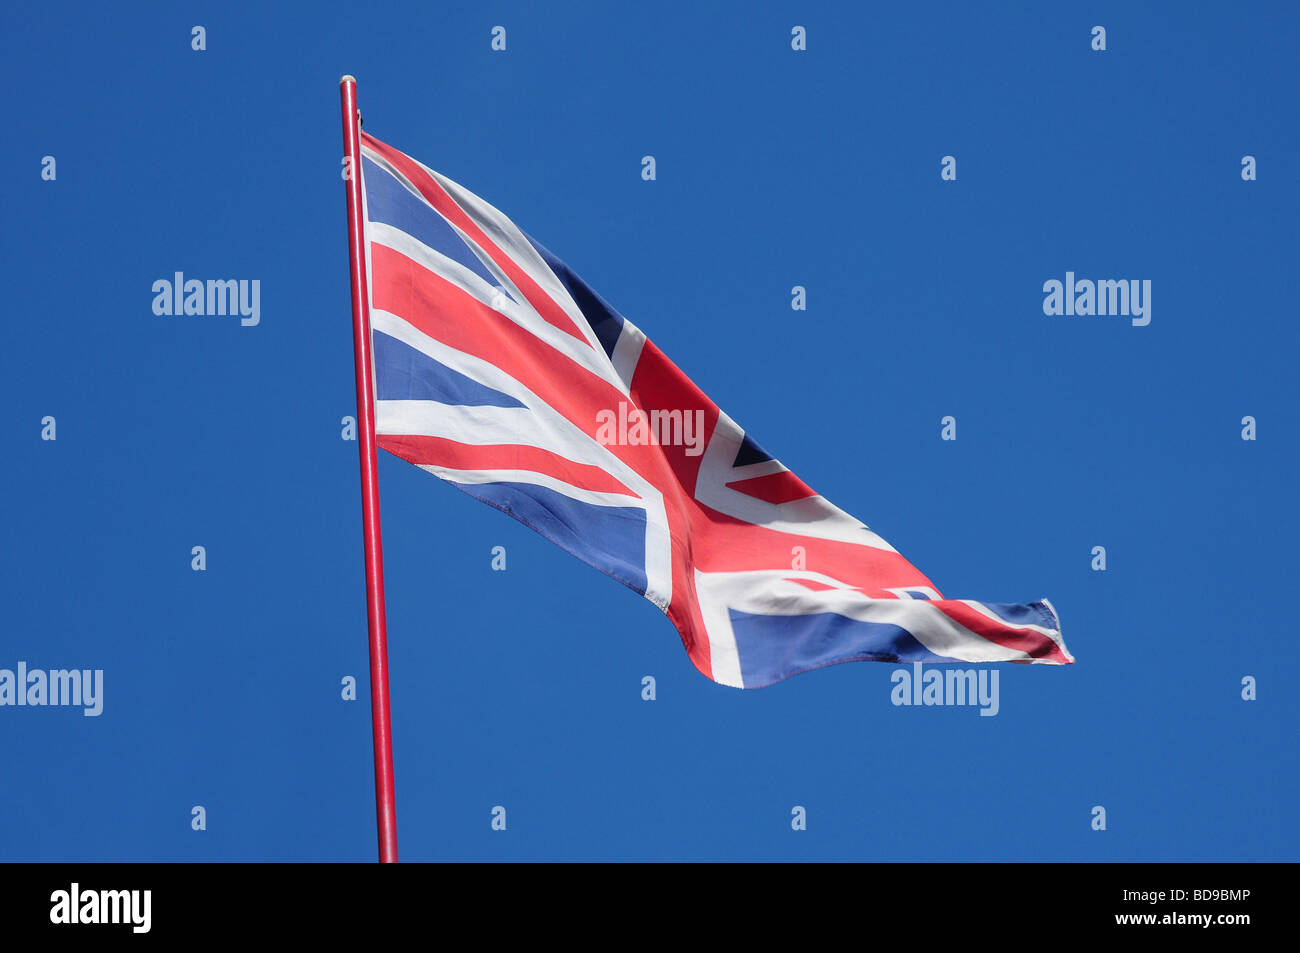 British Union Jack fluttering in a bright blue sky - Stock Image